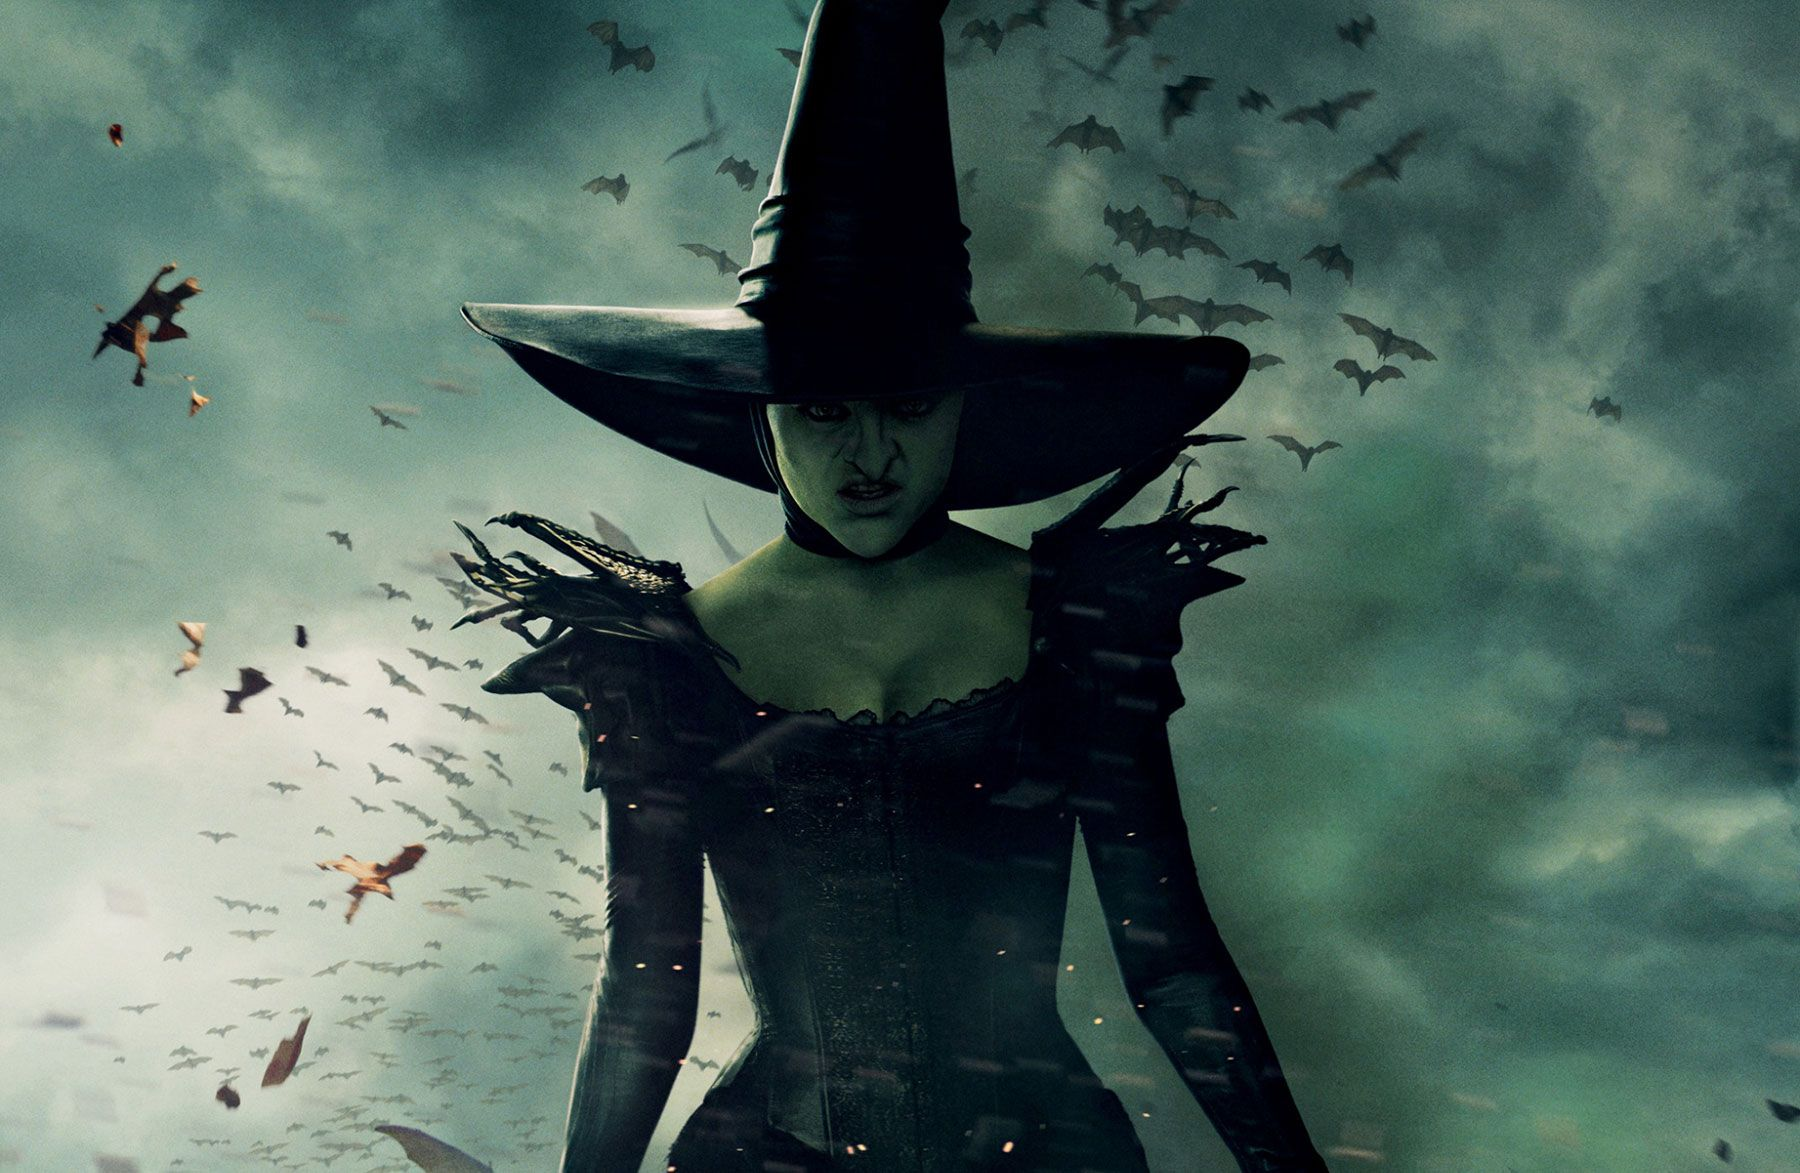 Scary Witch Wallpapers , Top Free Scary Witch Backgrounds